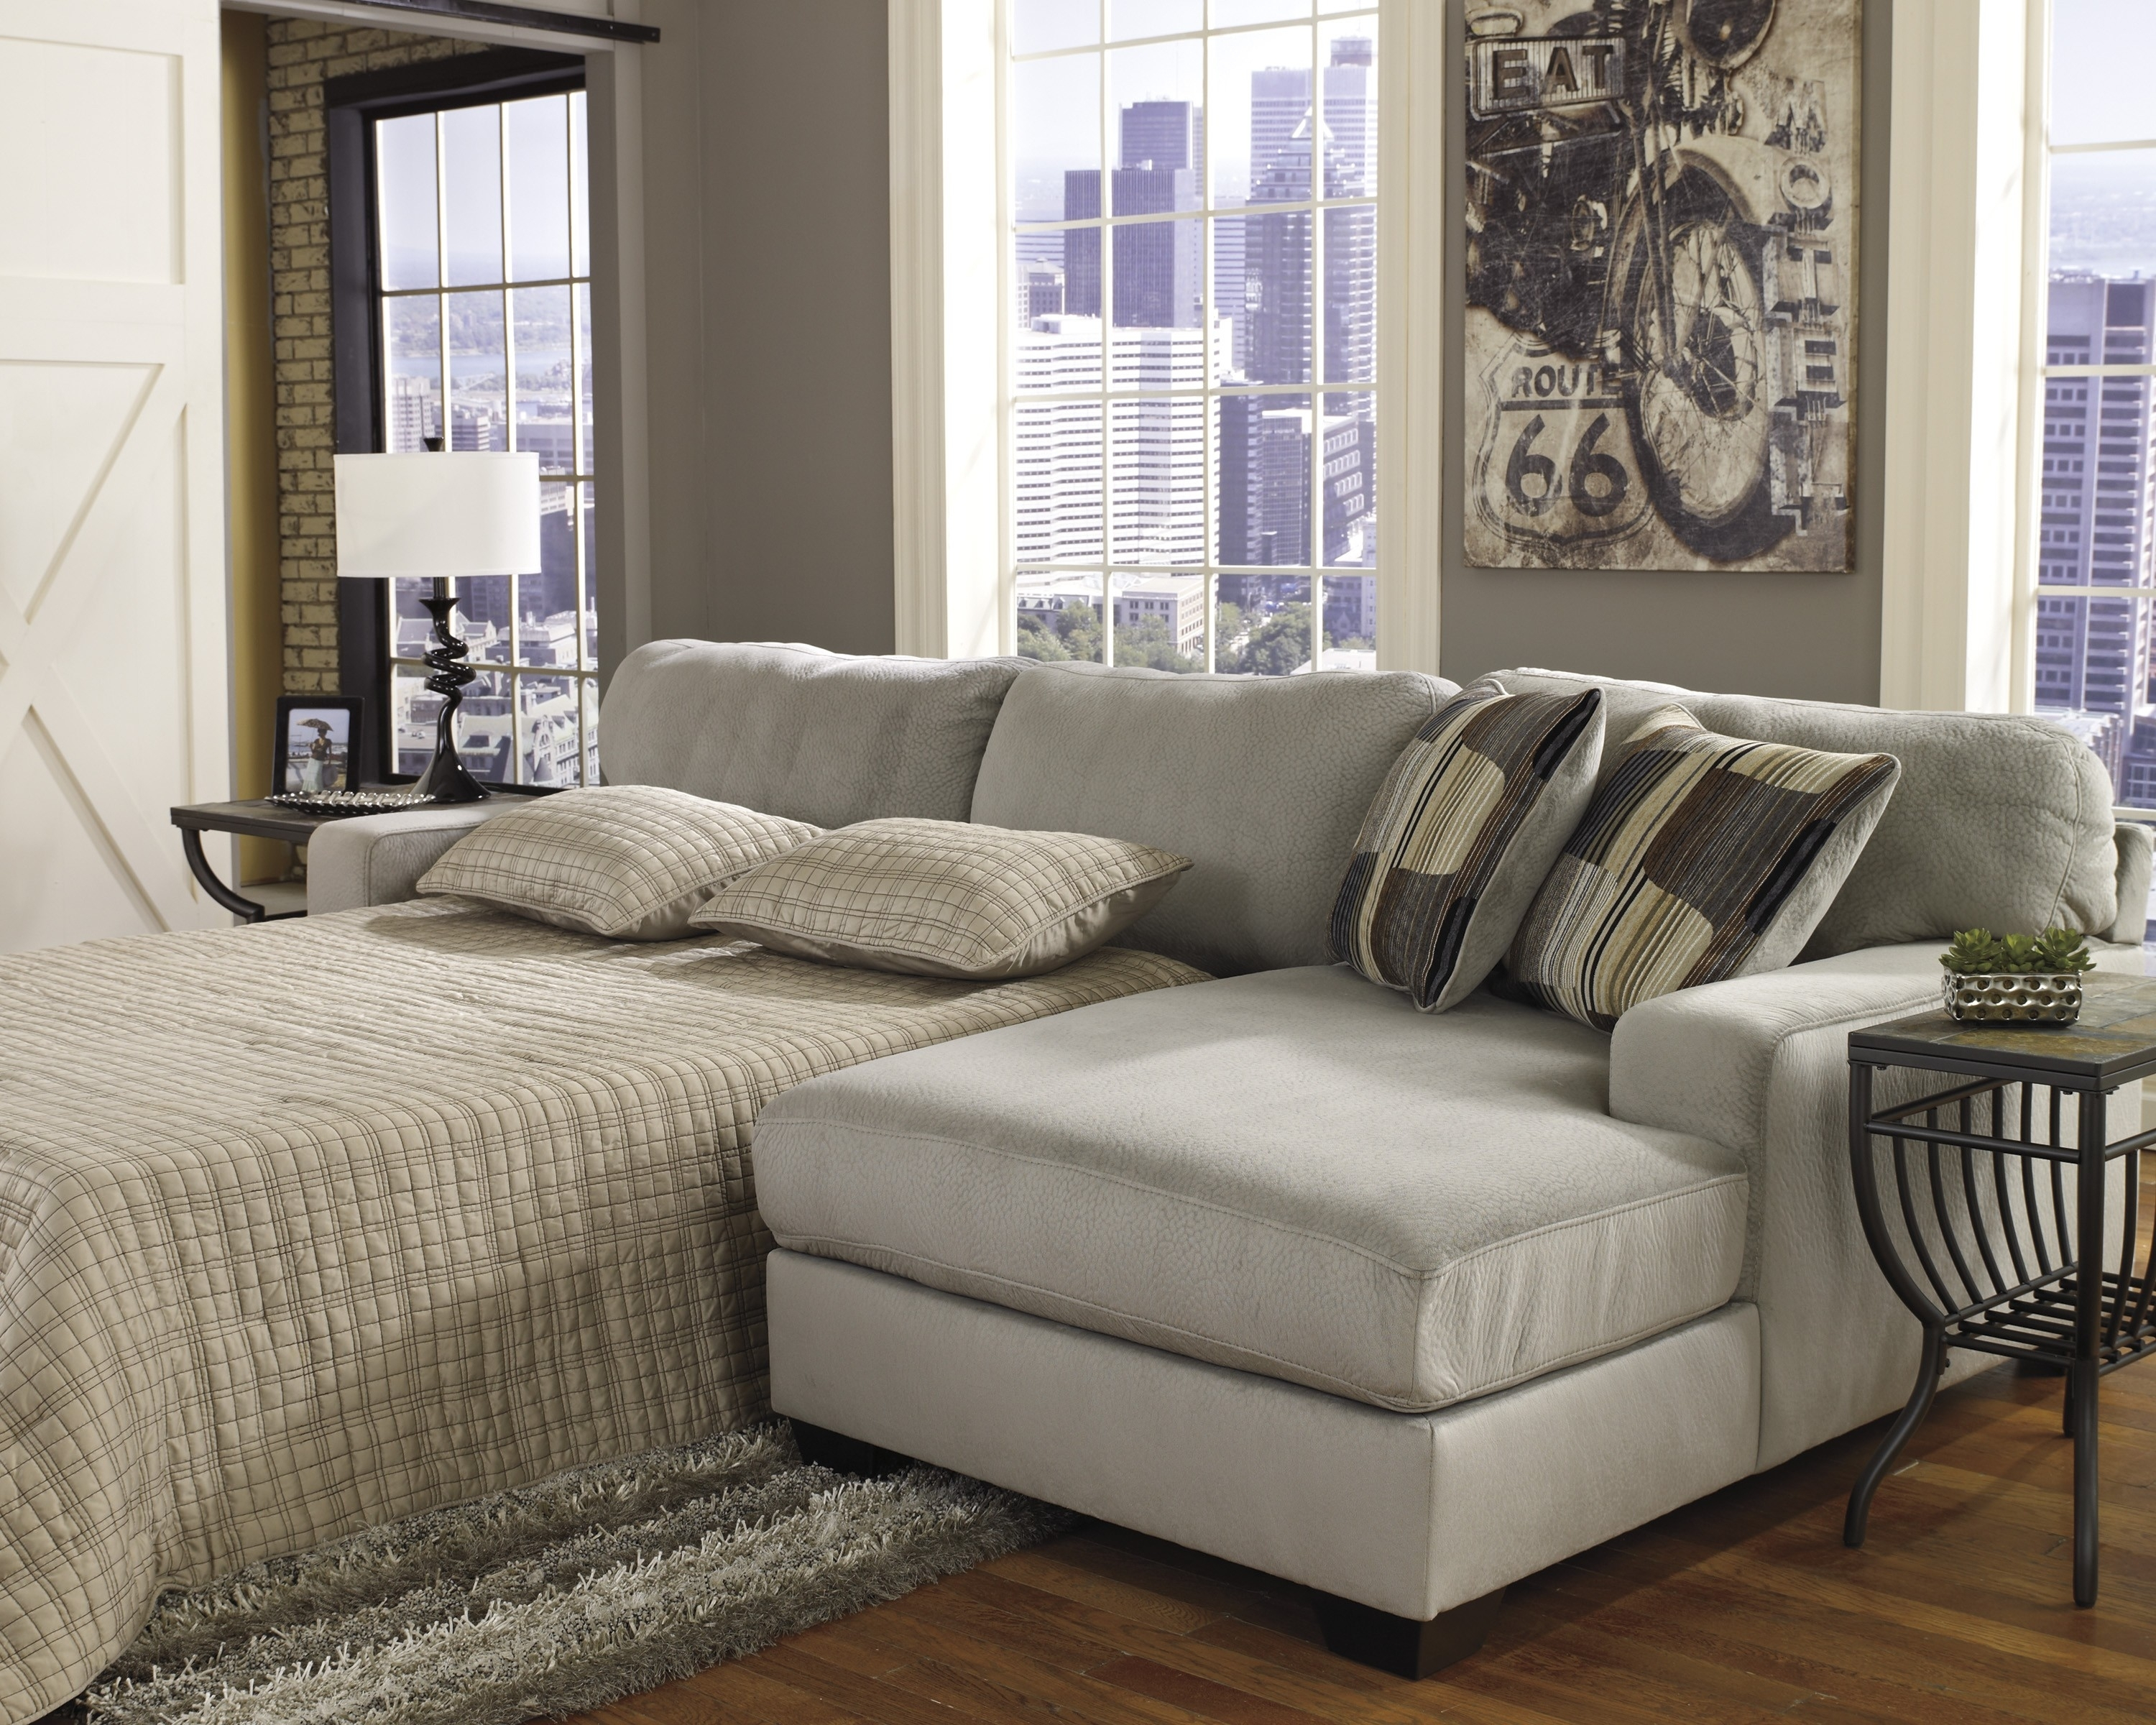 Sofa Bed Sectional With Chaise | Creativeadvertisingblog for Lucy Dark Grey 2 Piece Sleeper Sectionals With Raf Chaise (Image 28 of 30)